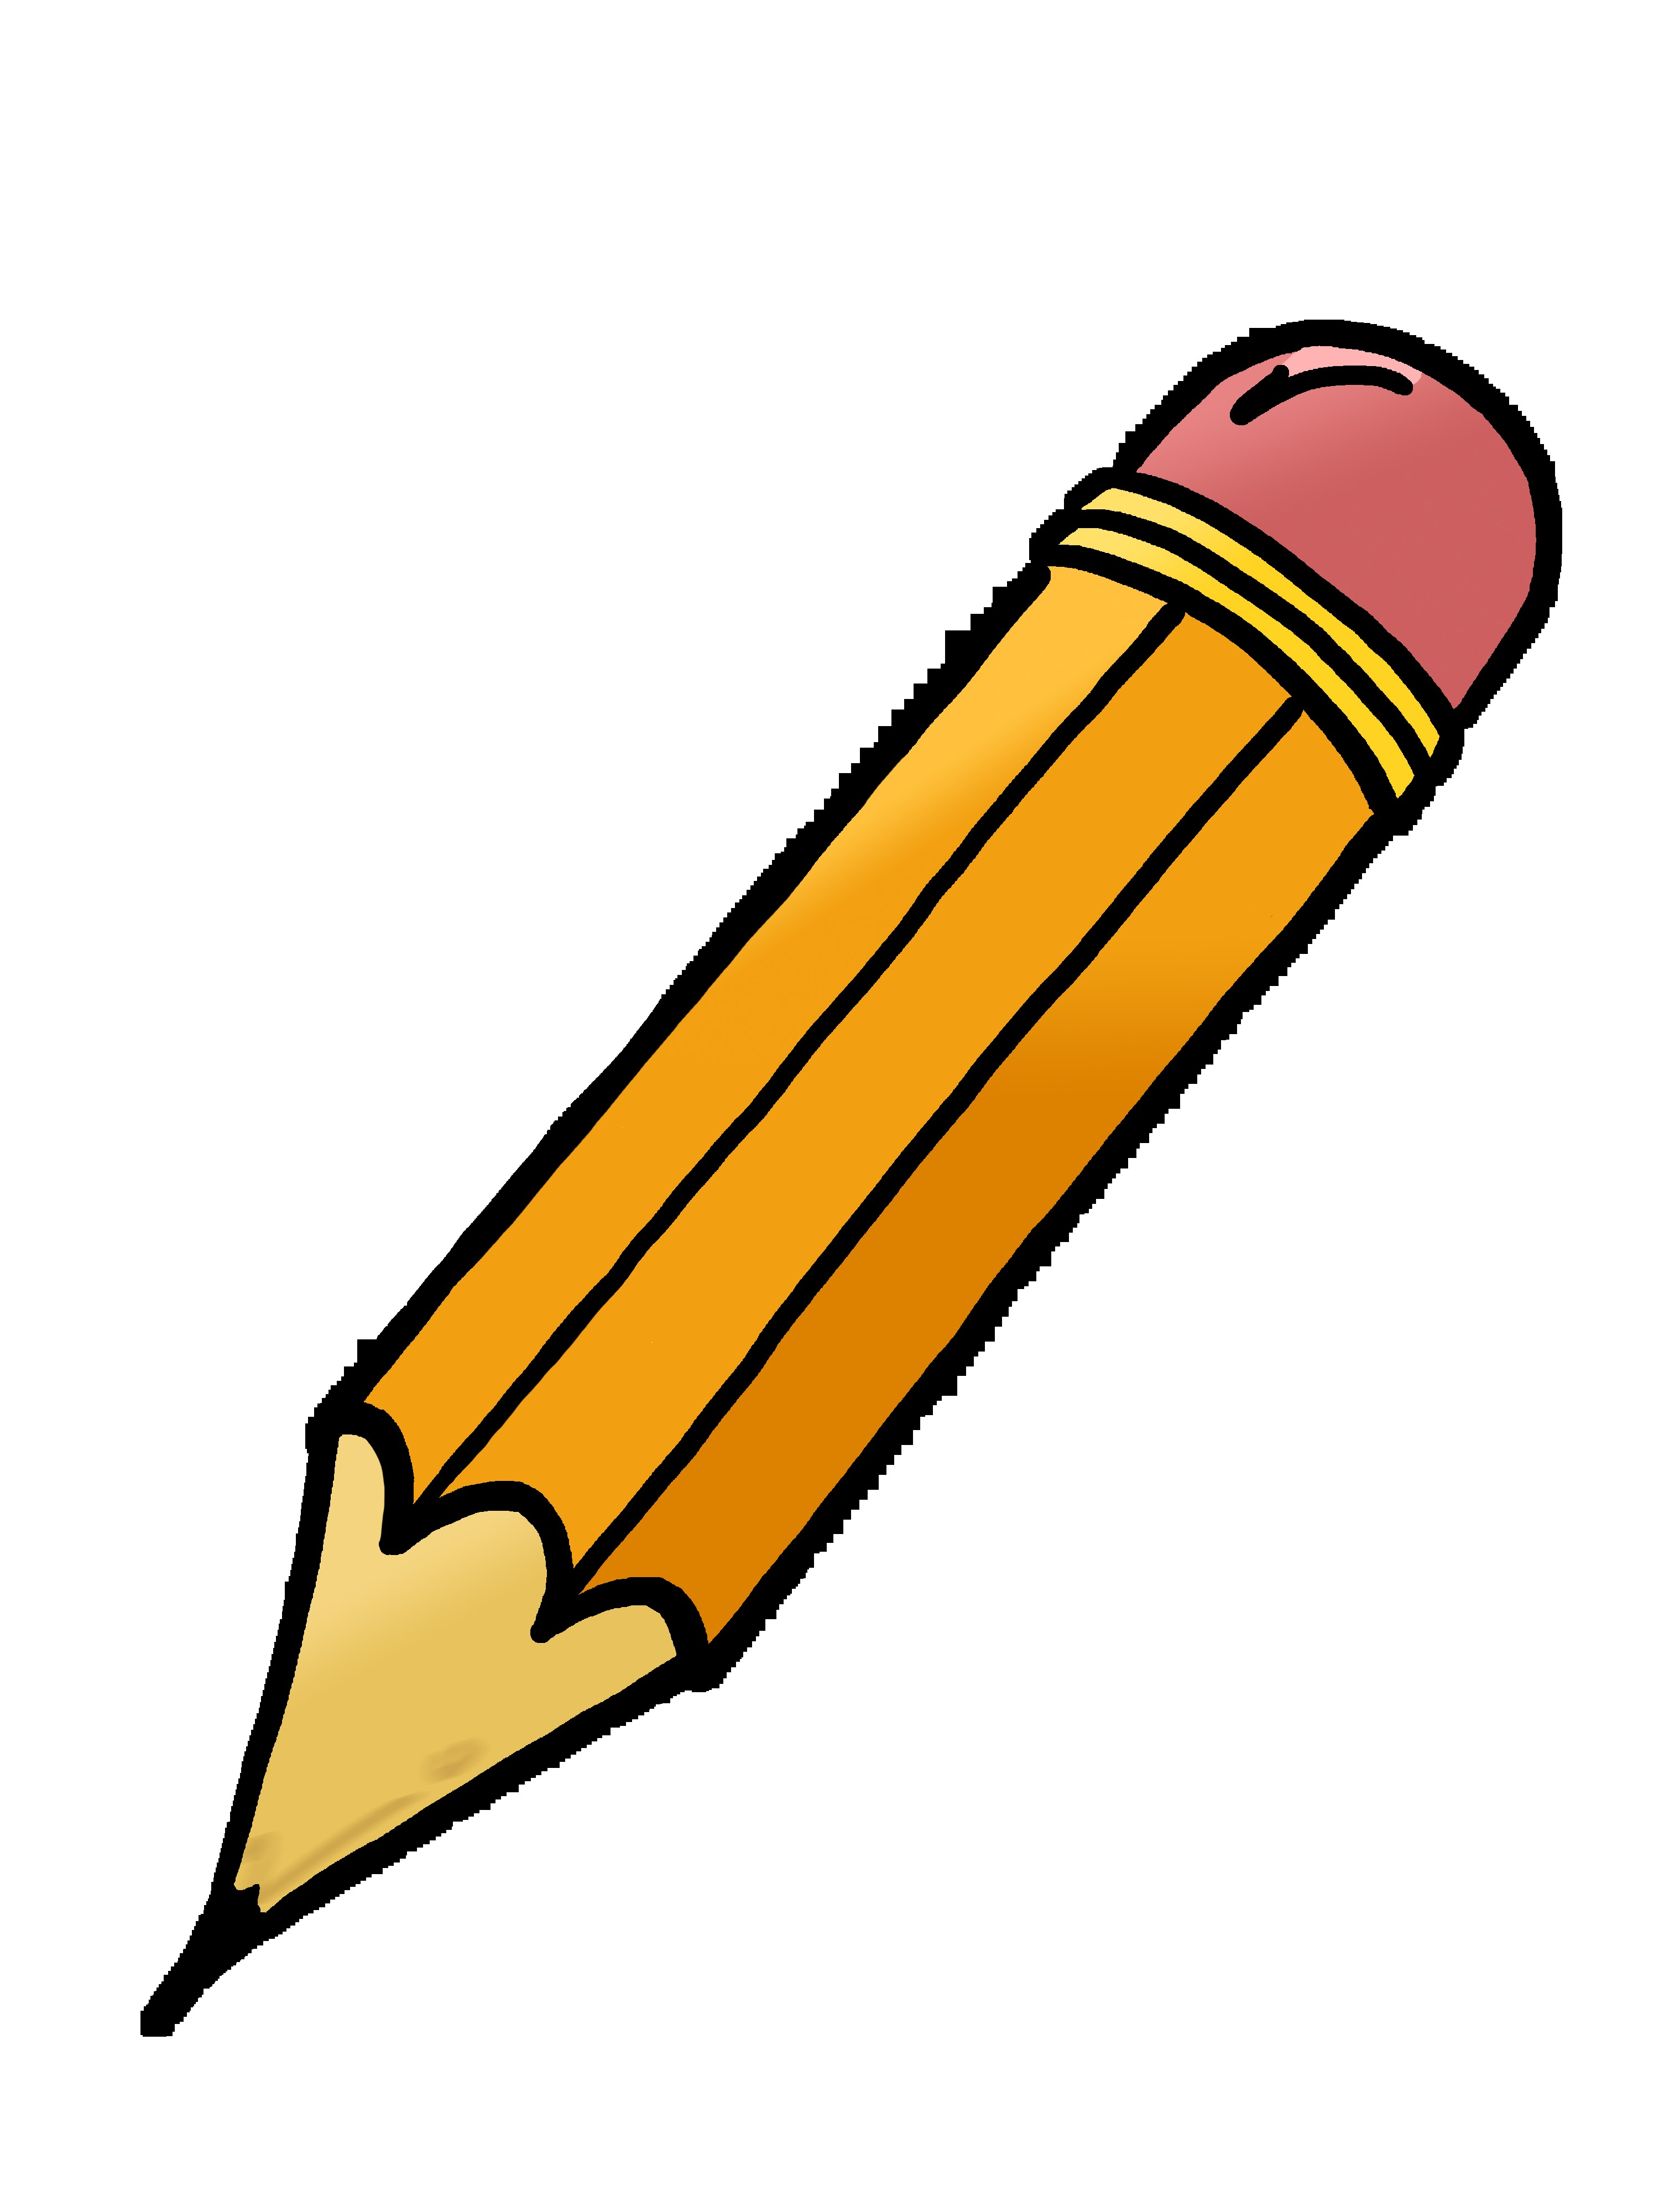 clipart stock Free pics download clip. Writer clipart pencil